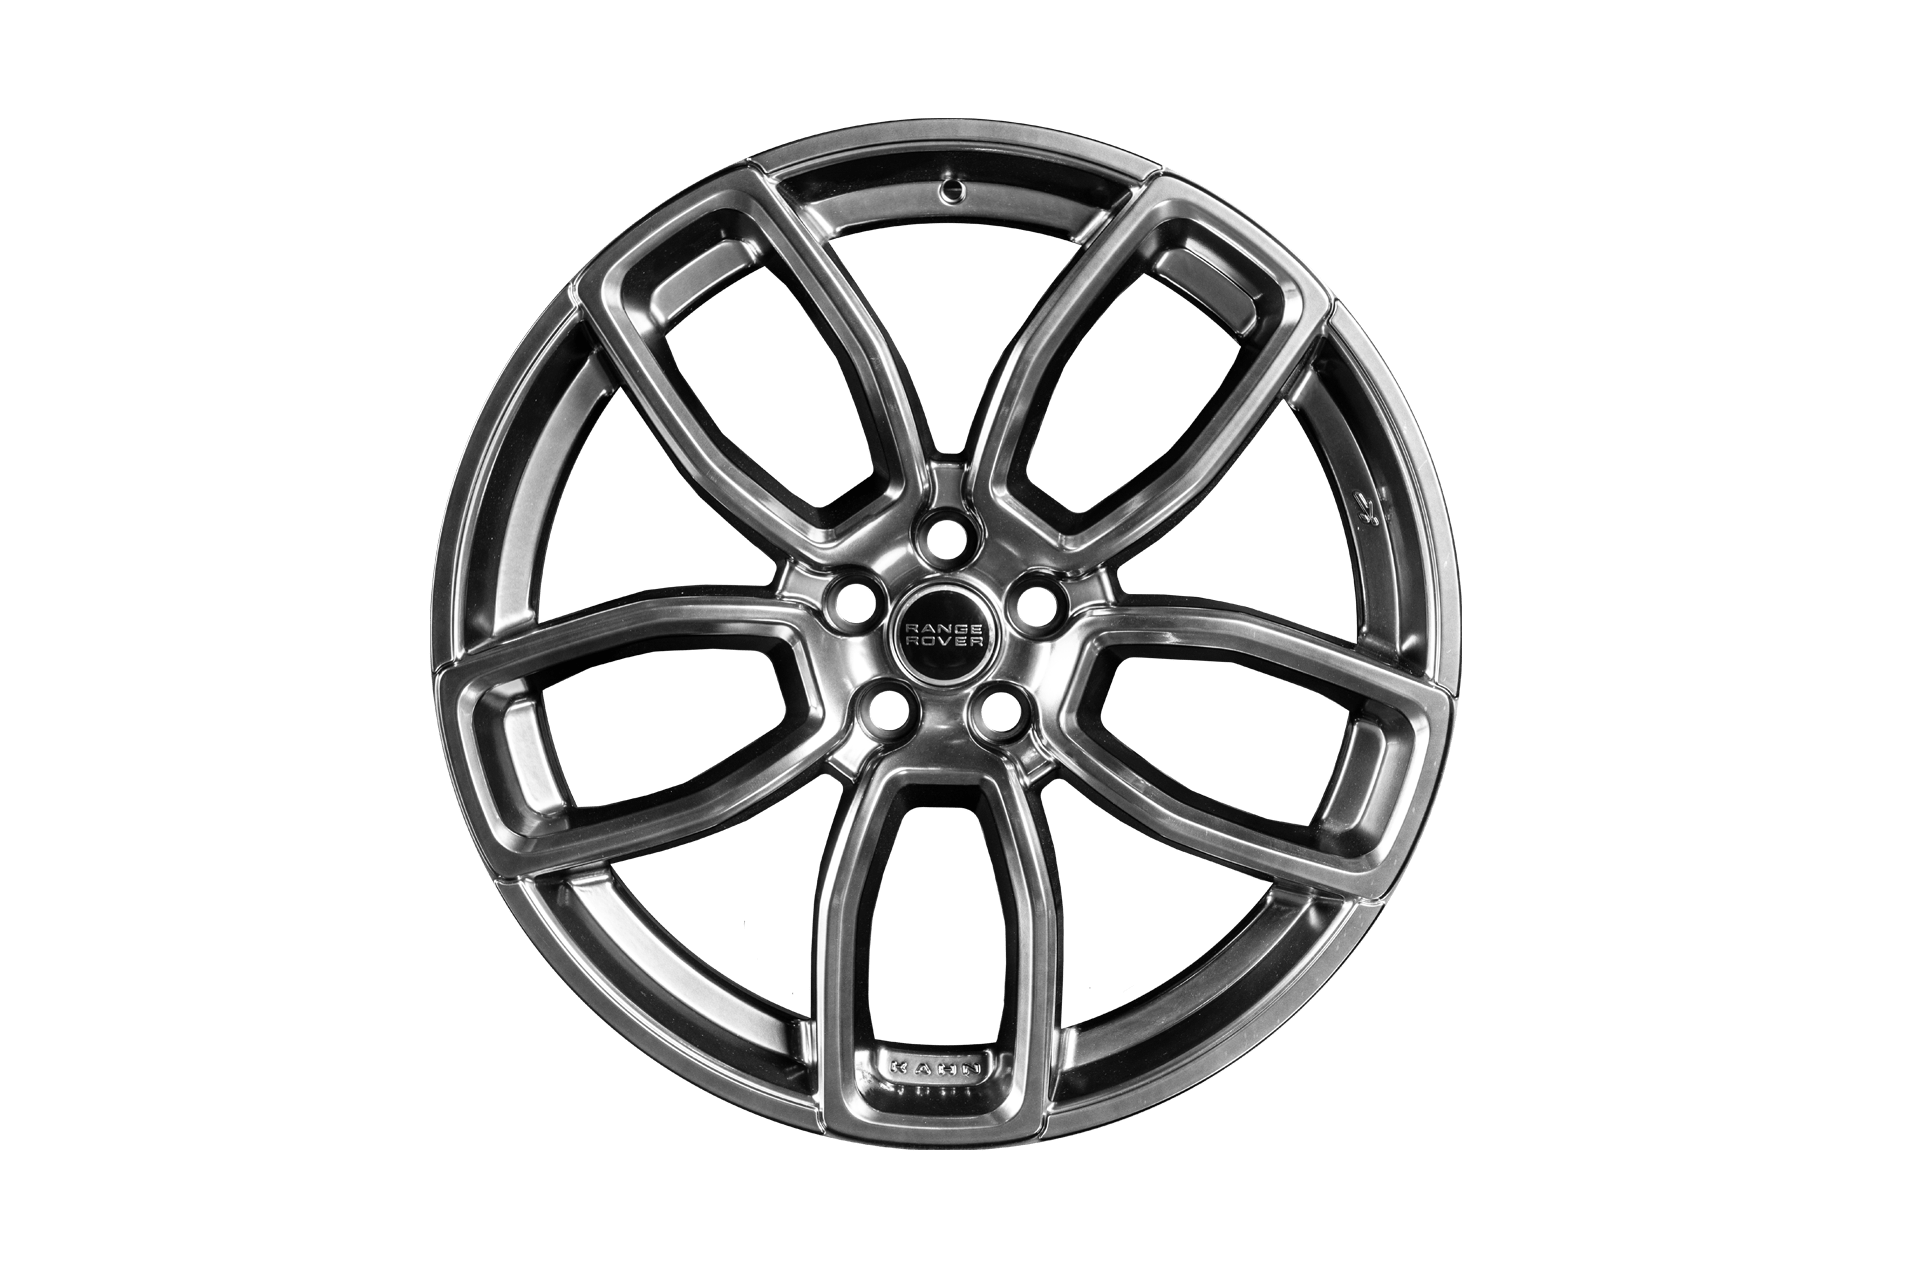 Range Rover (2018-Present) 600Le Light Alloy Wheels by Kahn - Image 2628